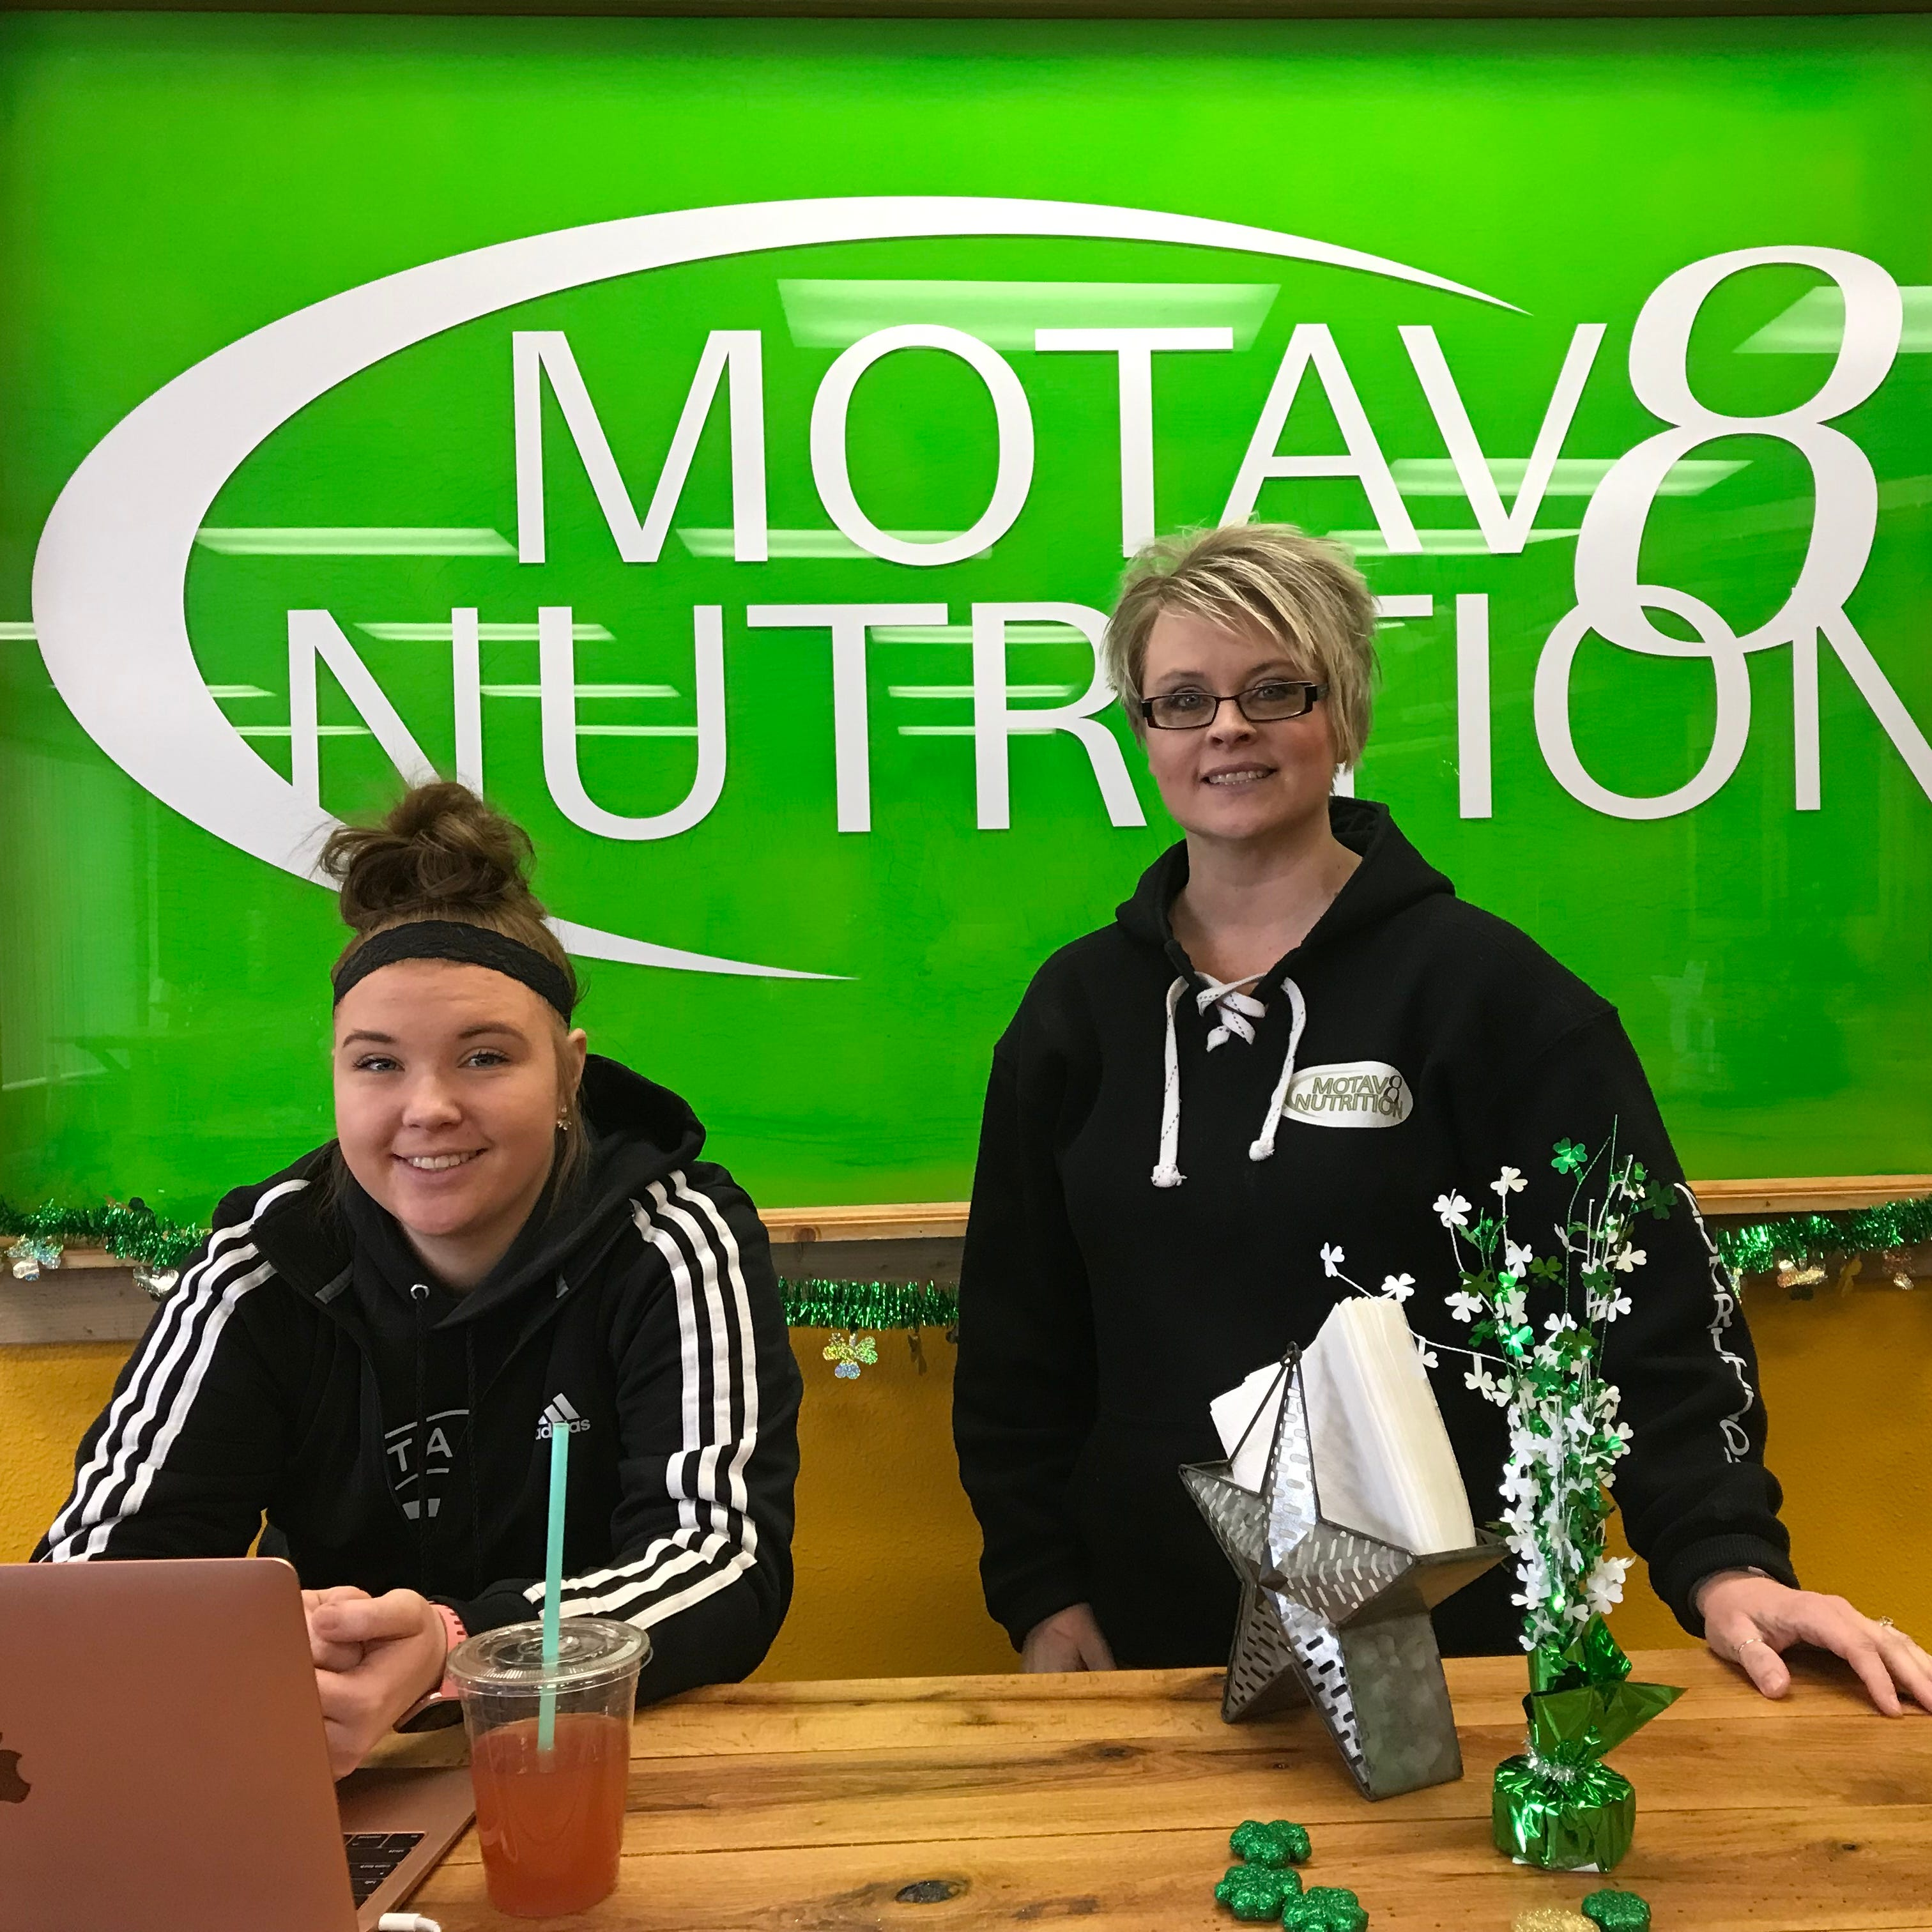 Motav8 Nutrition offers 33 shake flavors, tea, coffee in Wisconsin Rapids